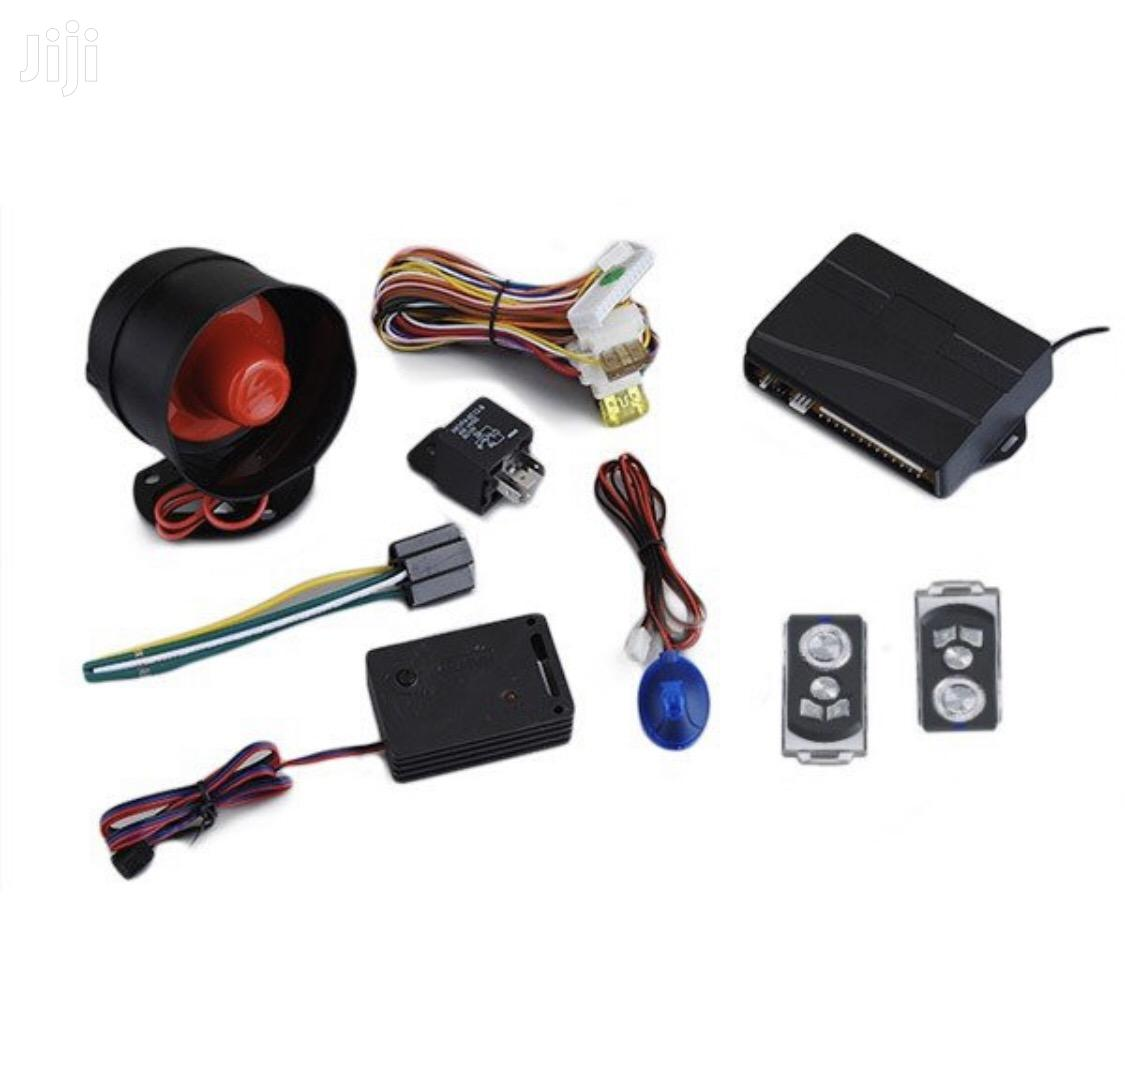 Car Security Alarm System With 2 Remotes